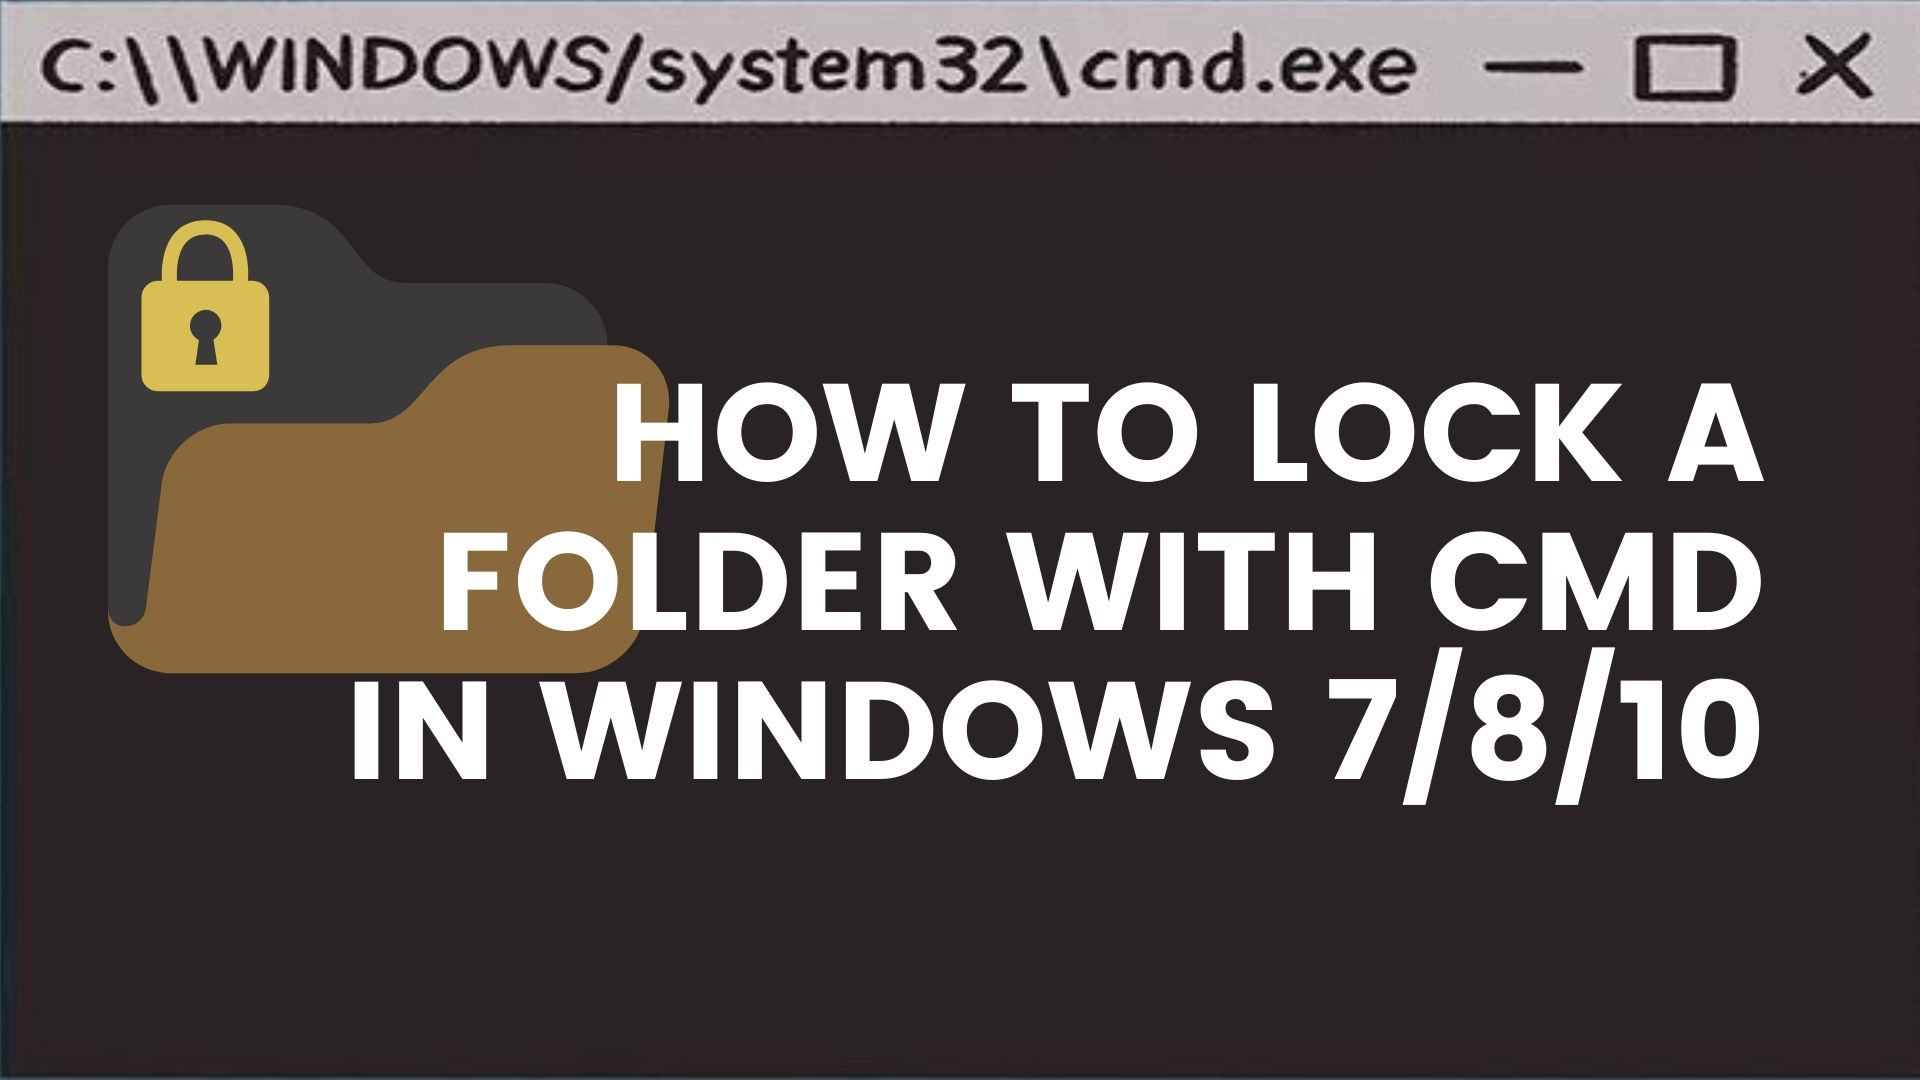 Folder lock without any external software using cmd windows